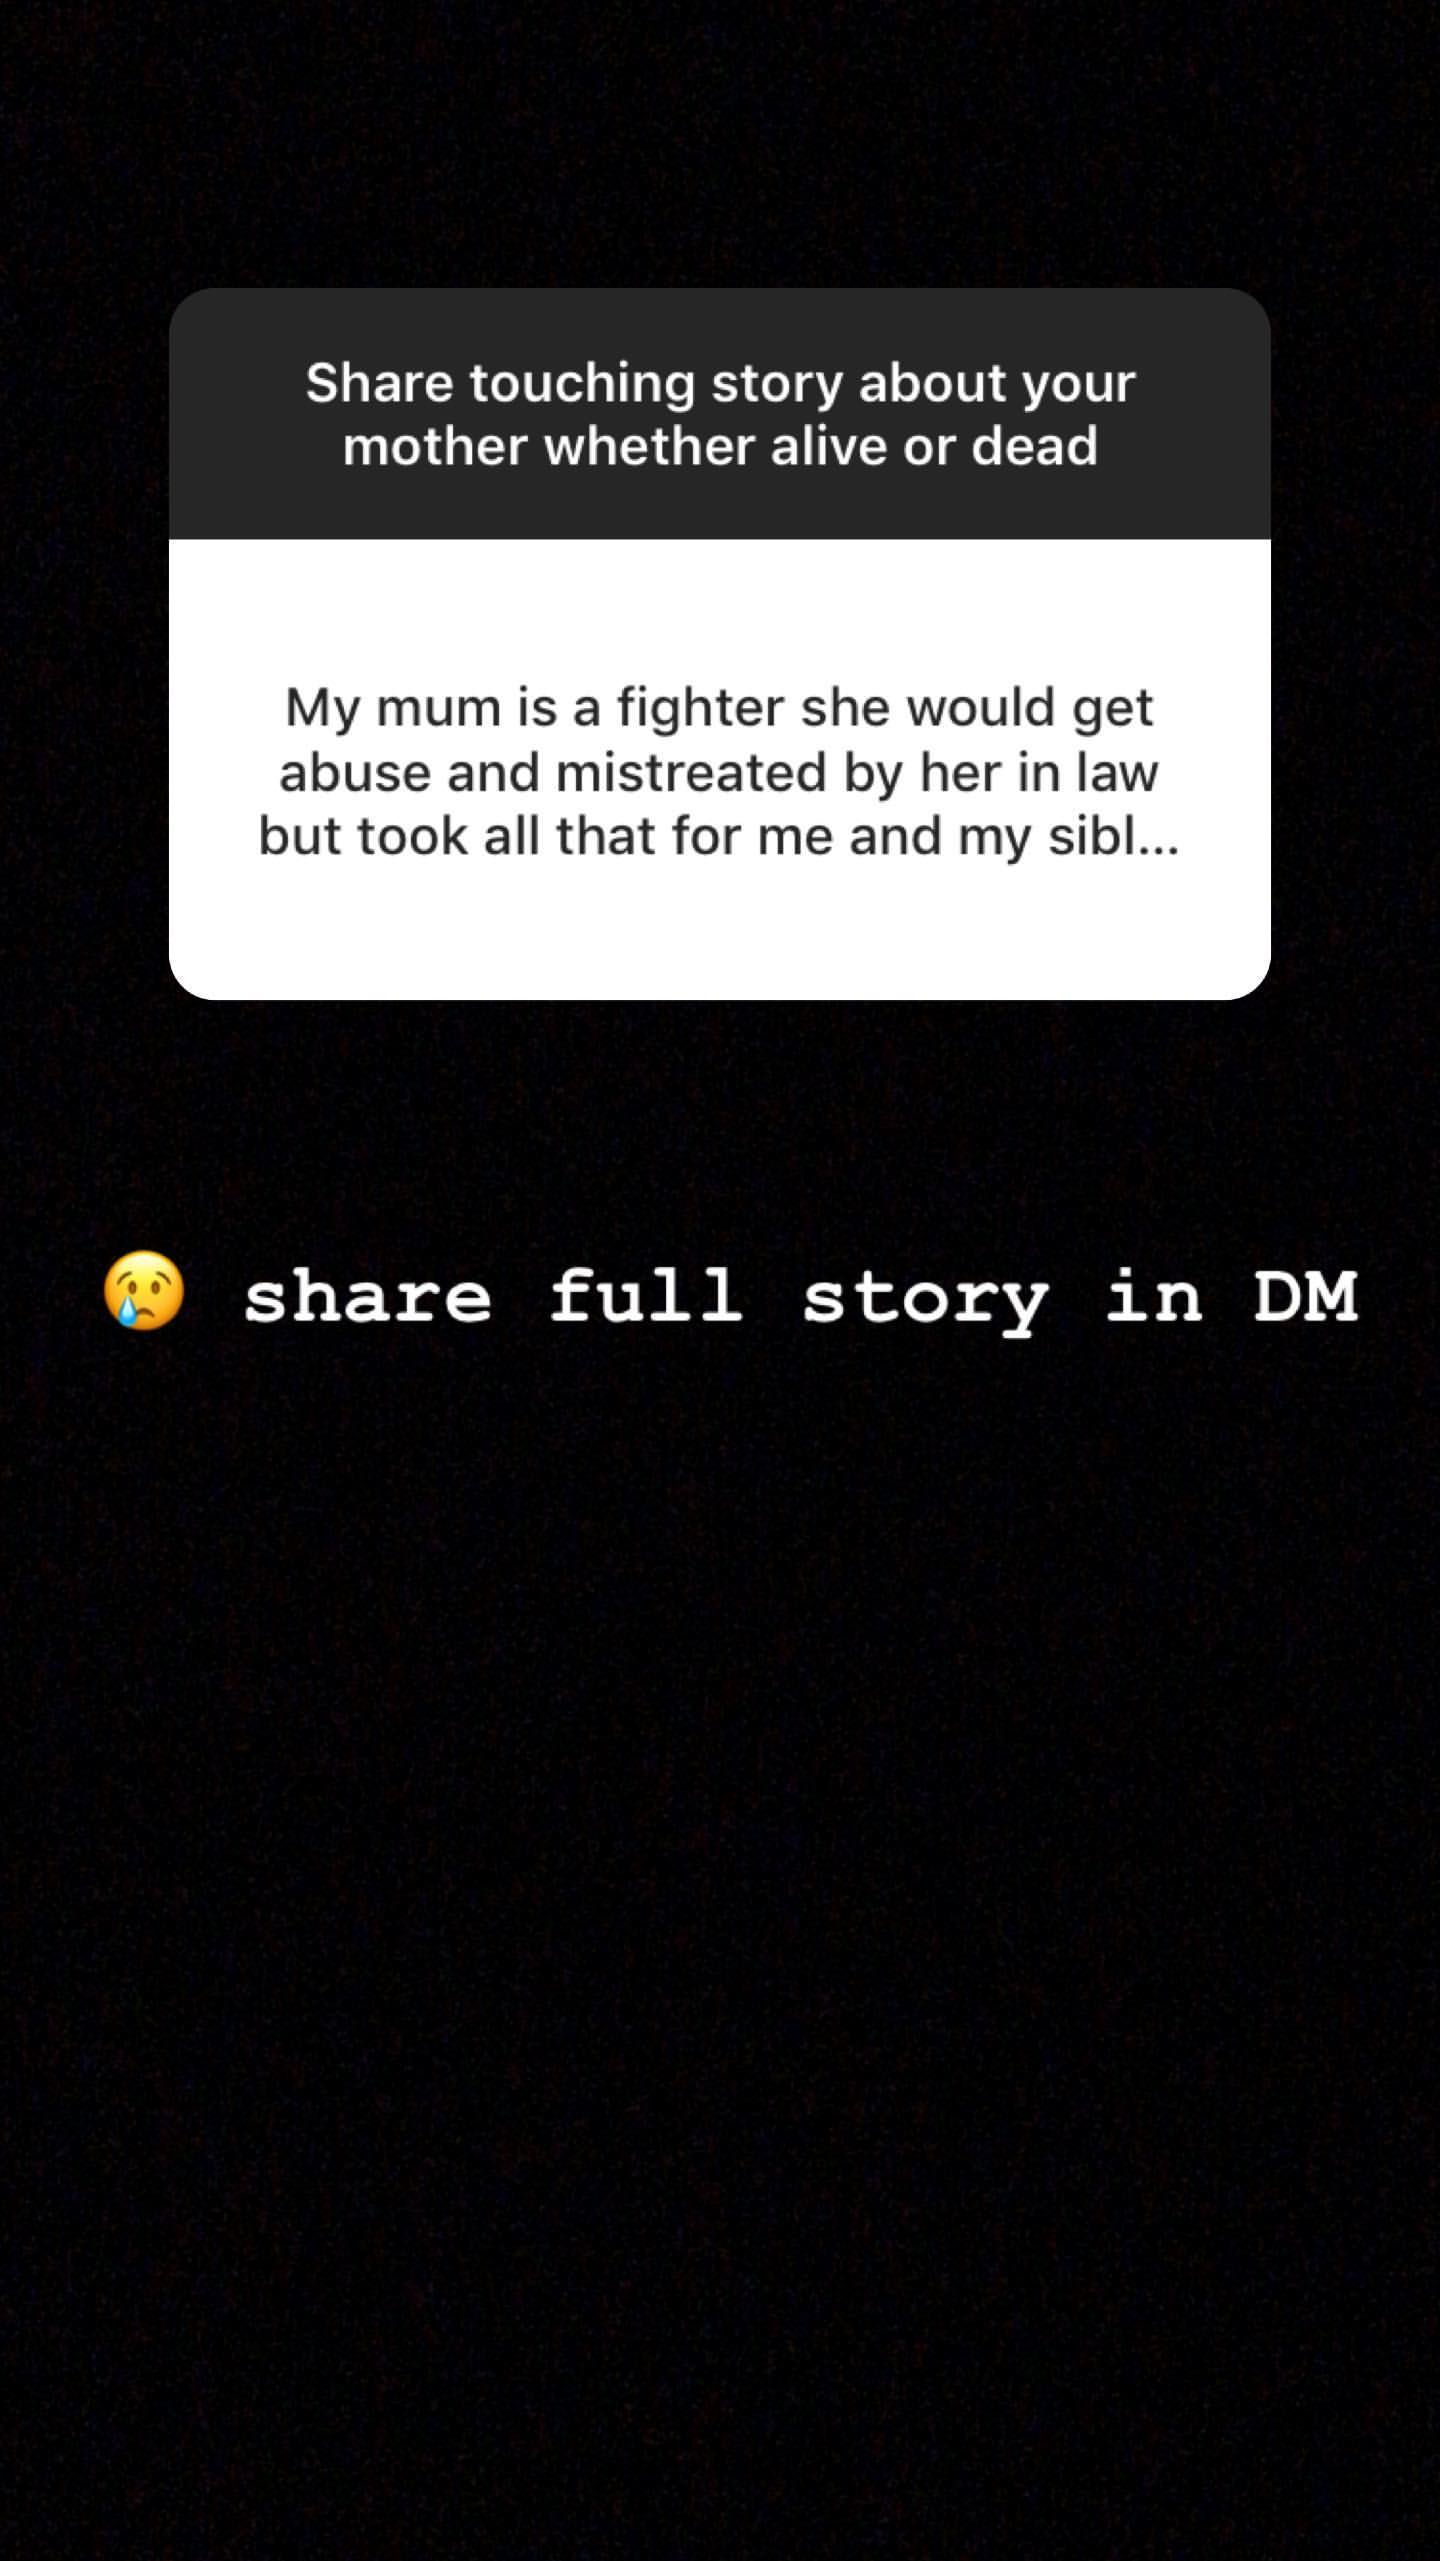 59733182 668705136891418 5039152273507164196 n - Tear-jerking! Mpasho fans break down sharing touching stories about their mothers